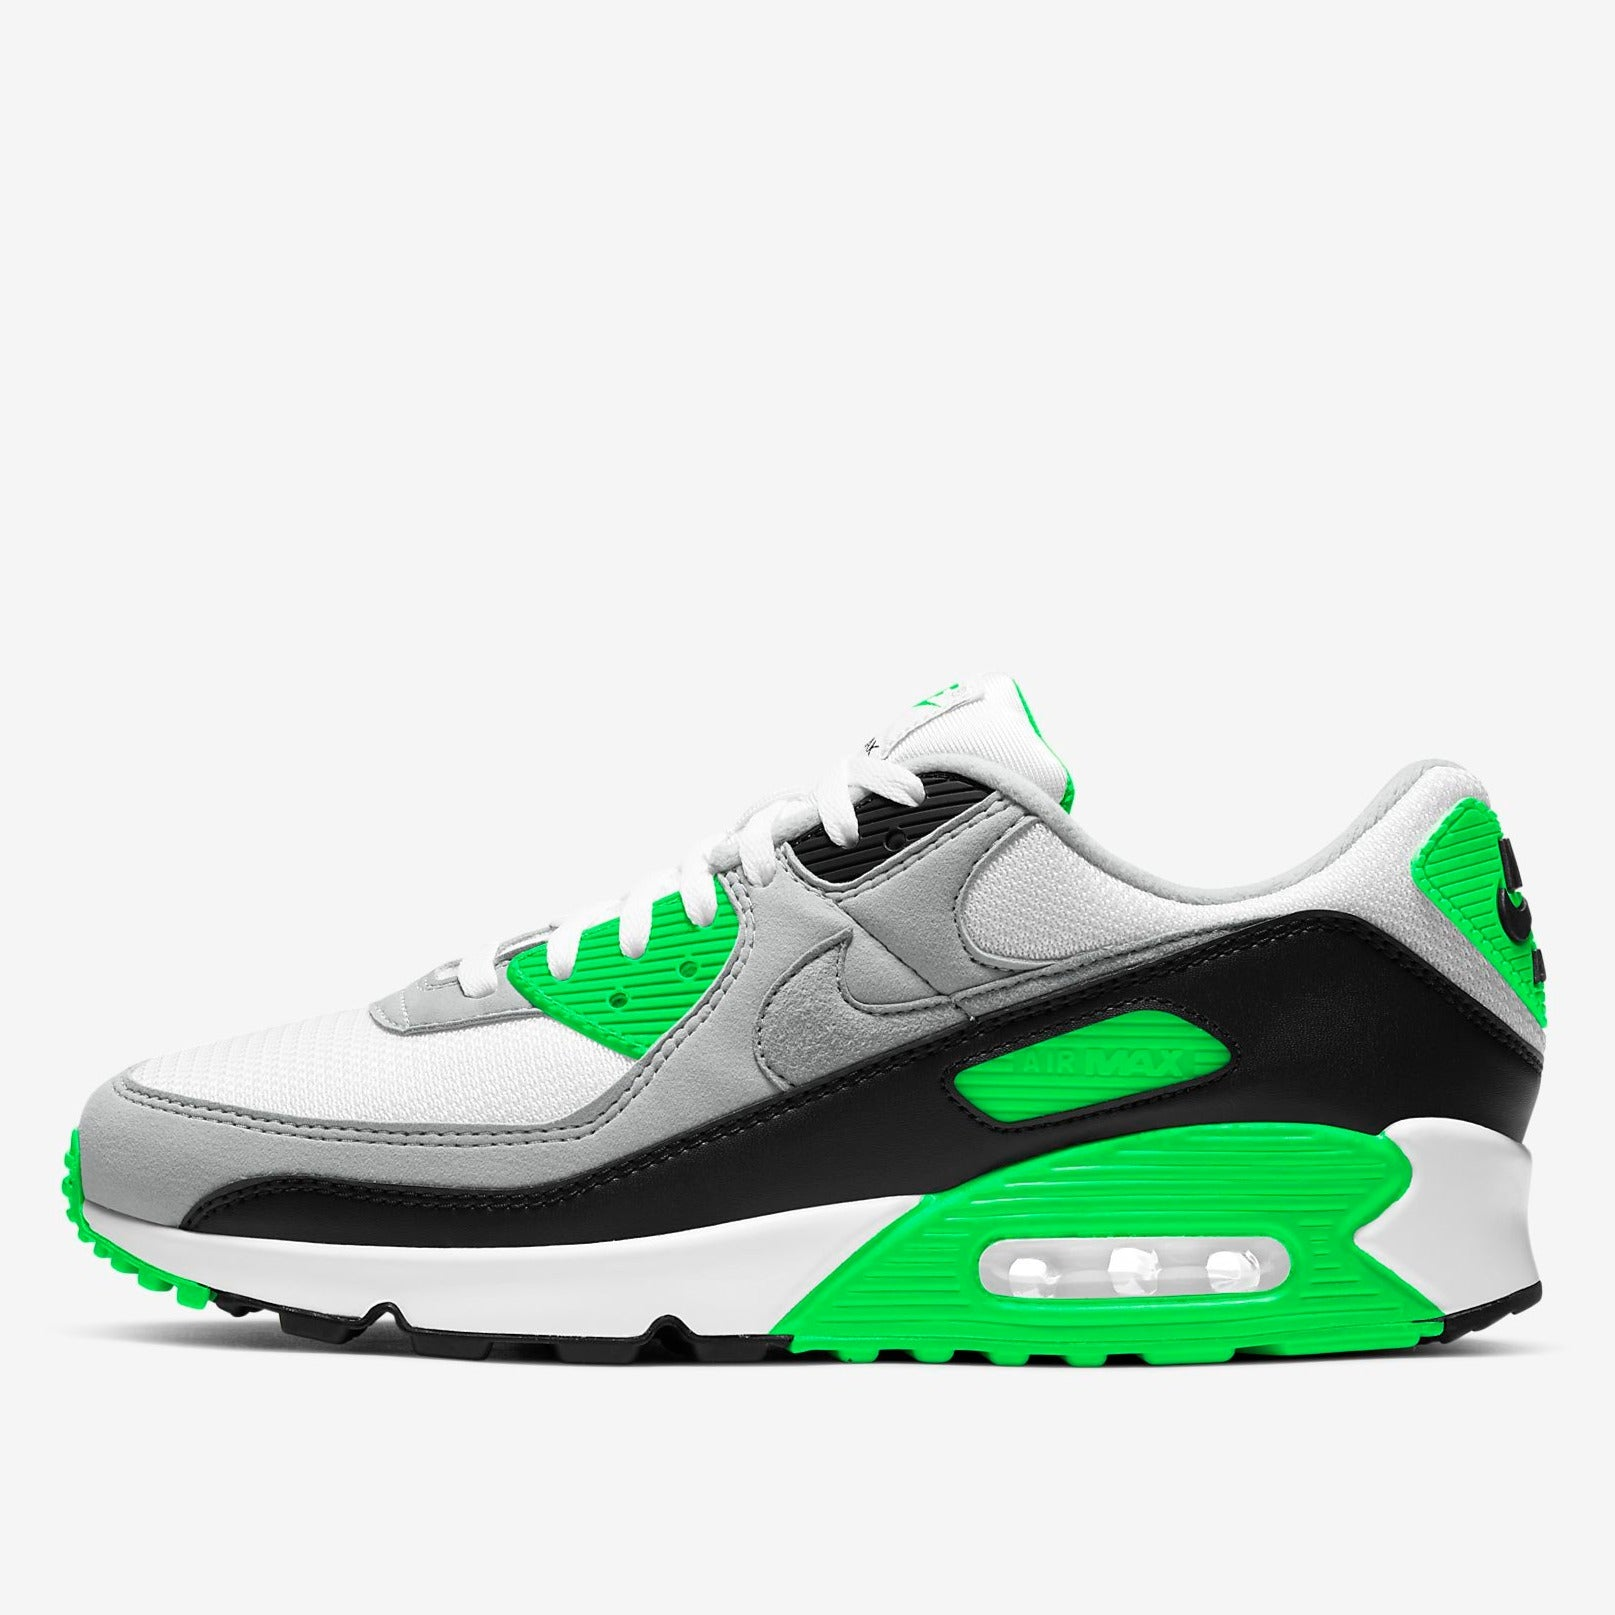 NIKE M'S FOOTWEAR AIR MAX 90 - WHITE/LIGHT SOLAR FLARE